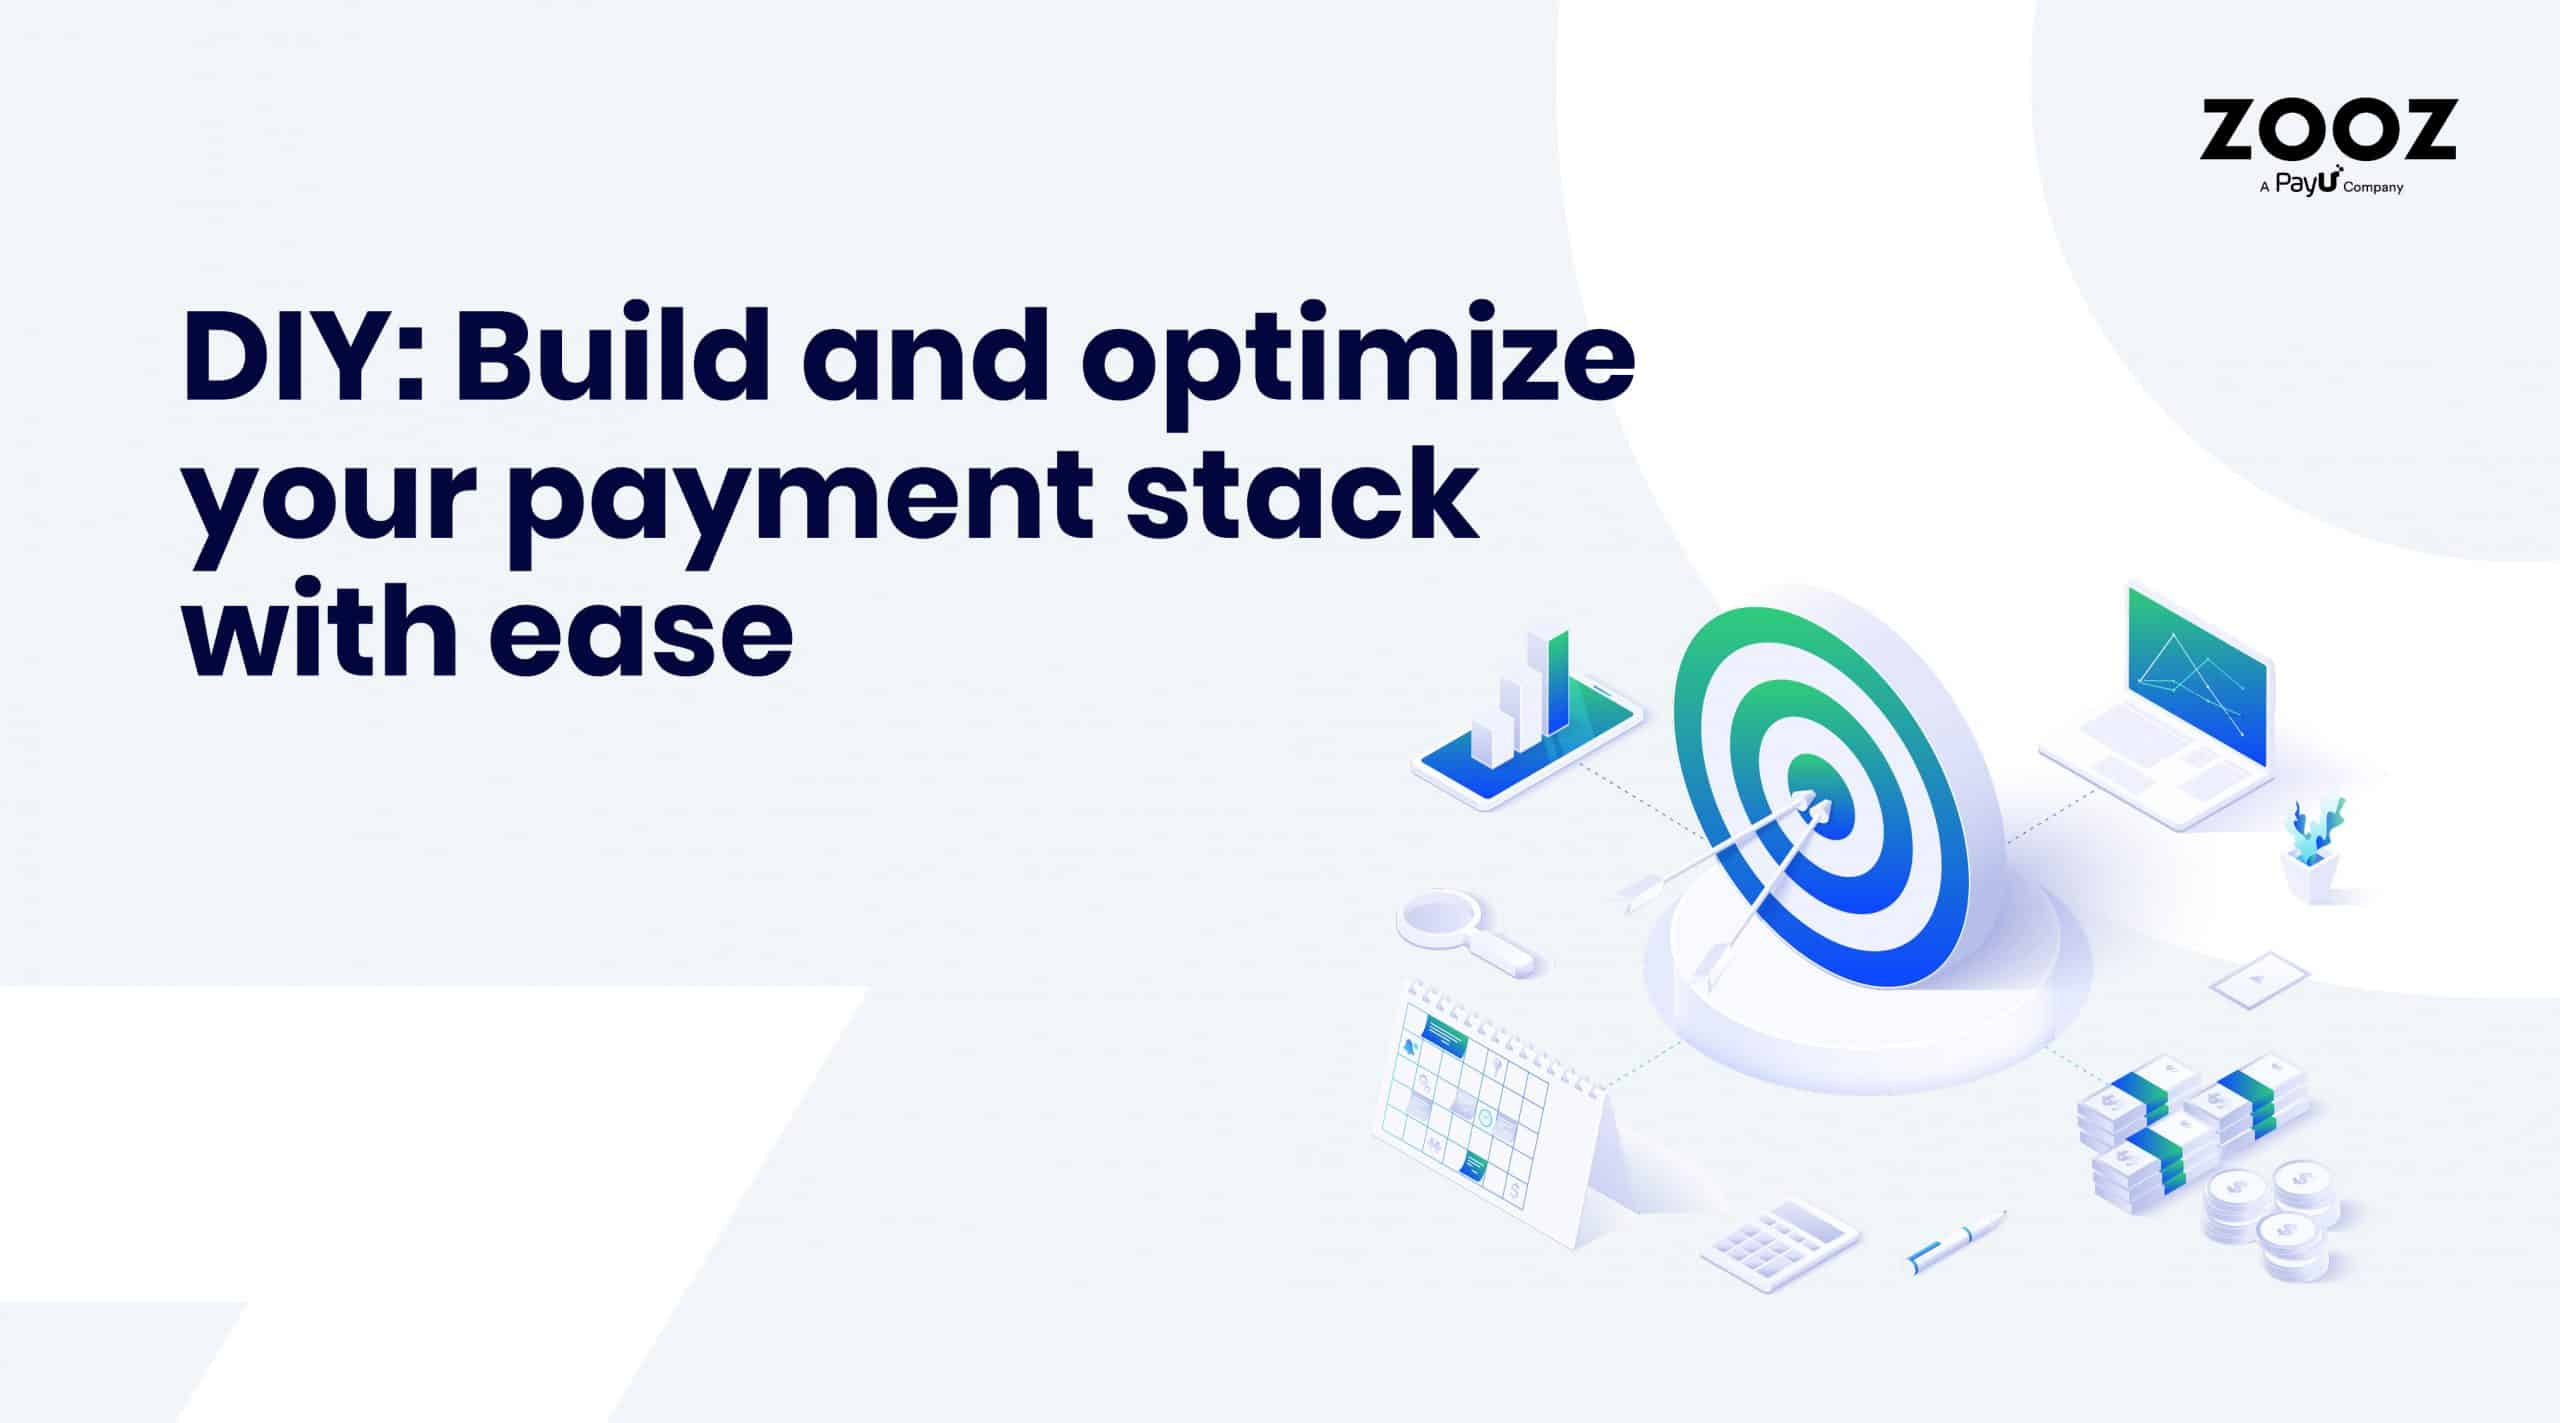 build and optimize your payment stack with ease